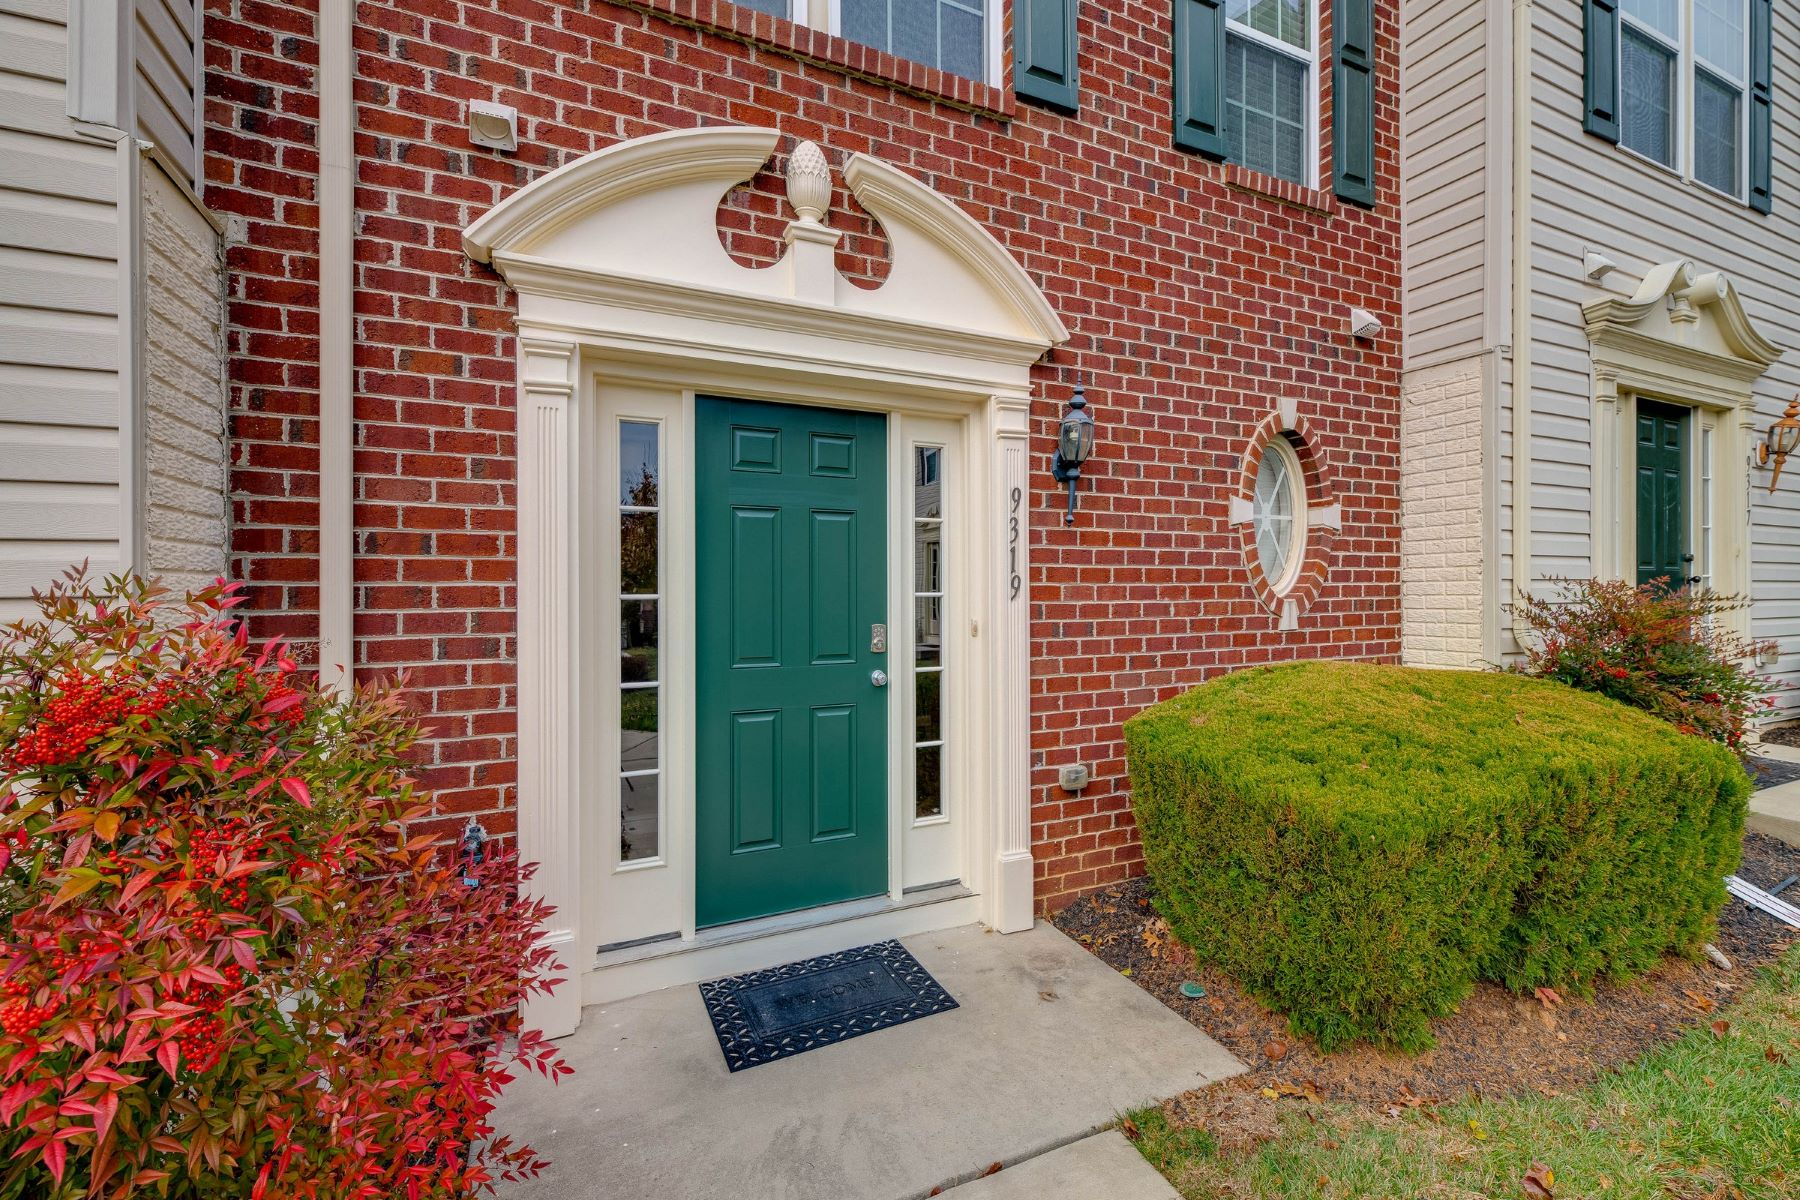 Single Family Homes for Sale at Esplanade Red Run 9319 Paragon Way Owings Mills, Maryland 21117 United States